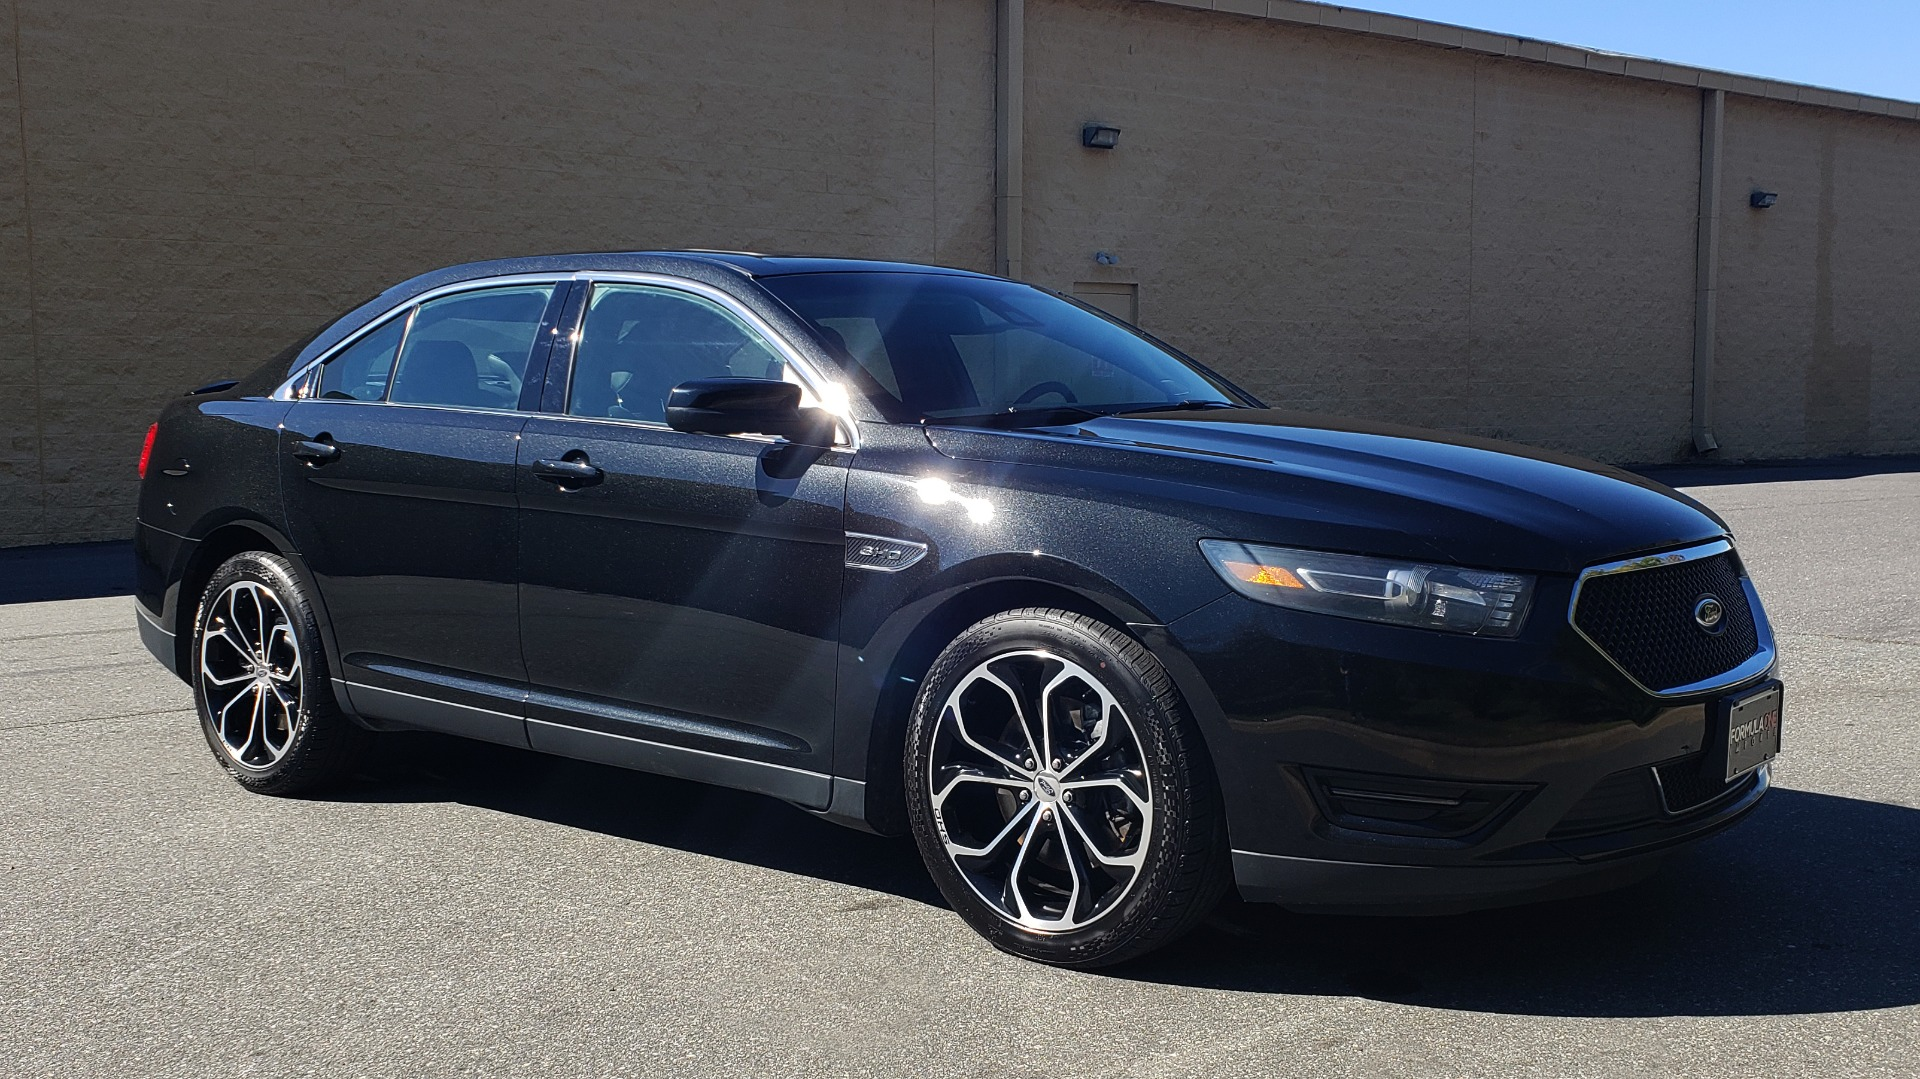 Used 2015 Ford TAURUS SHO 3.5L ECOBOOST V6 / NAV / SUNROOF / HTD STS / BSM / REARVIEW for sale Sold at Formula Imports in Charlotte NC 28227 5